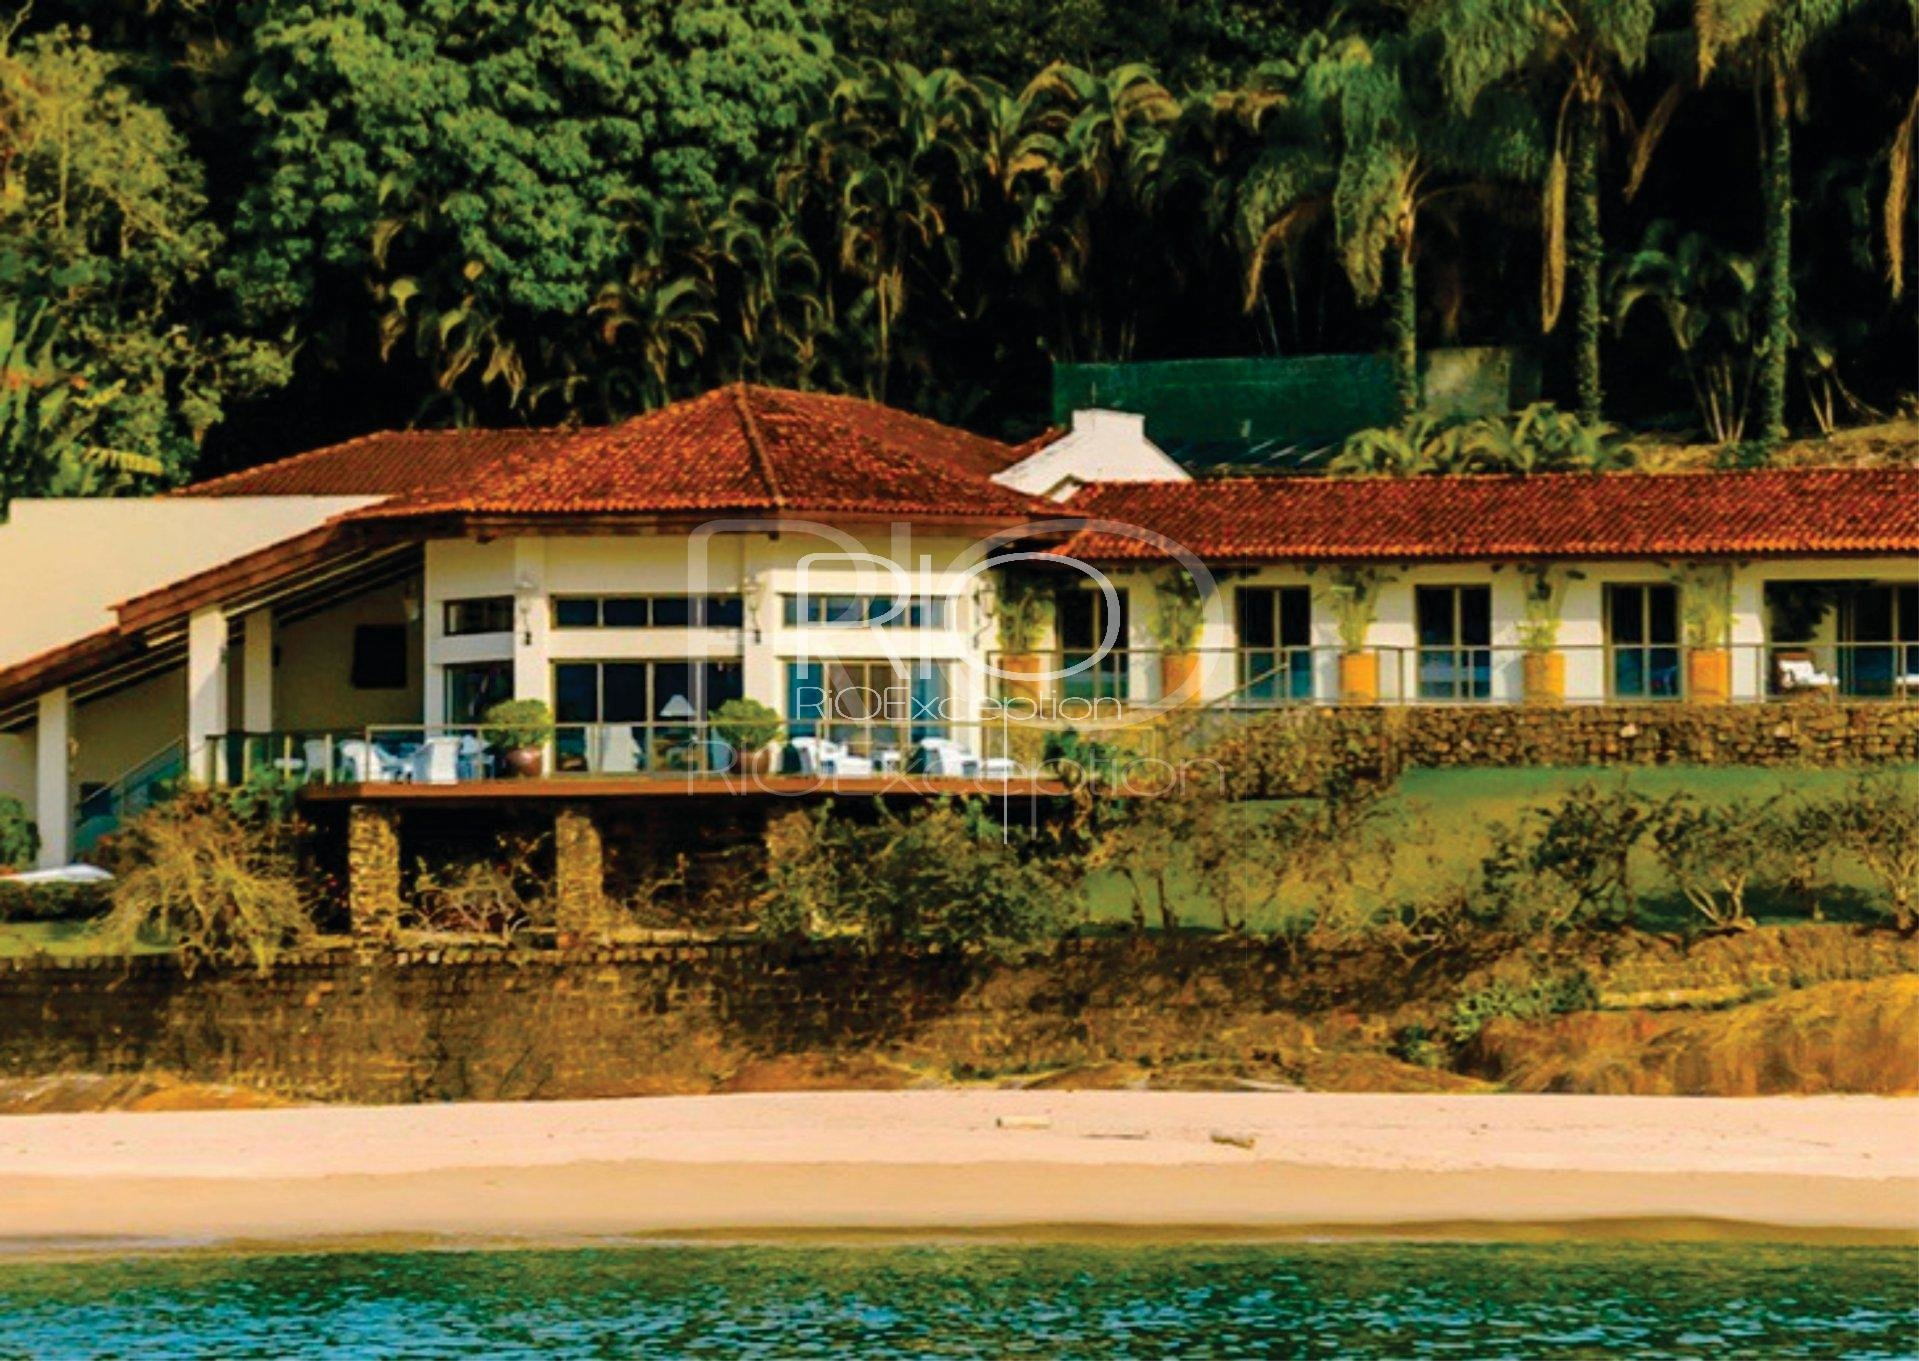 PRIVATE ISLAND, Paraty EXCLUSIVITY